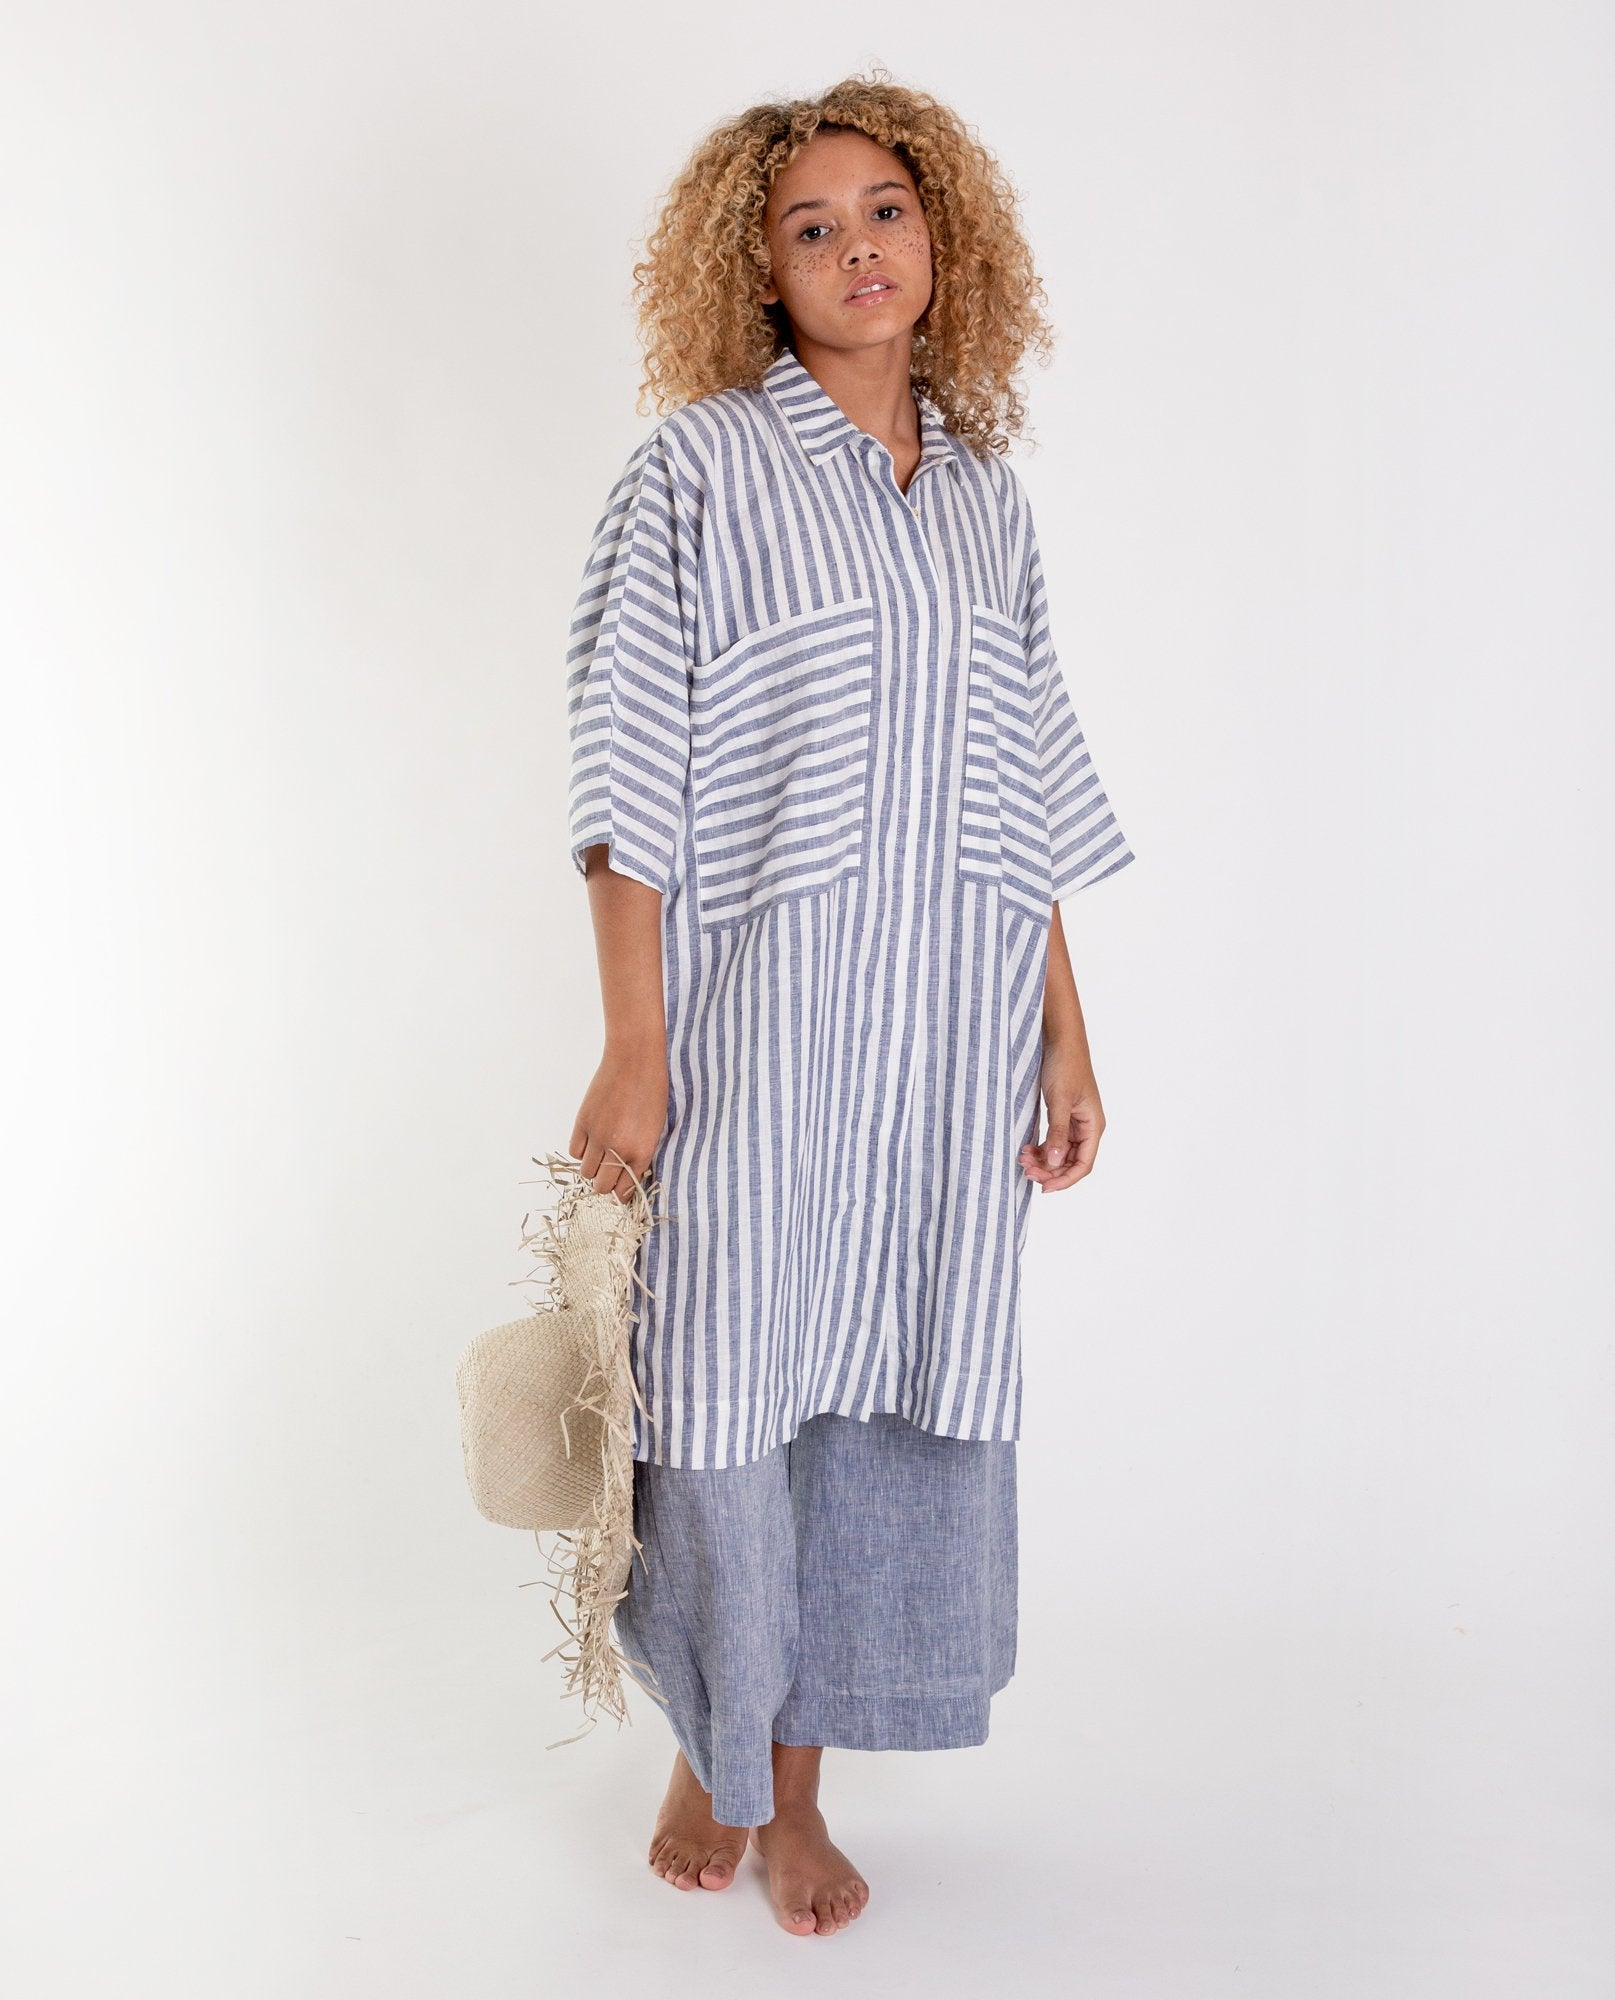 MARSHA-SUE Linen Shirt In Blue Stripe